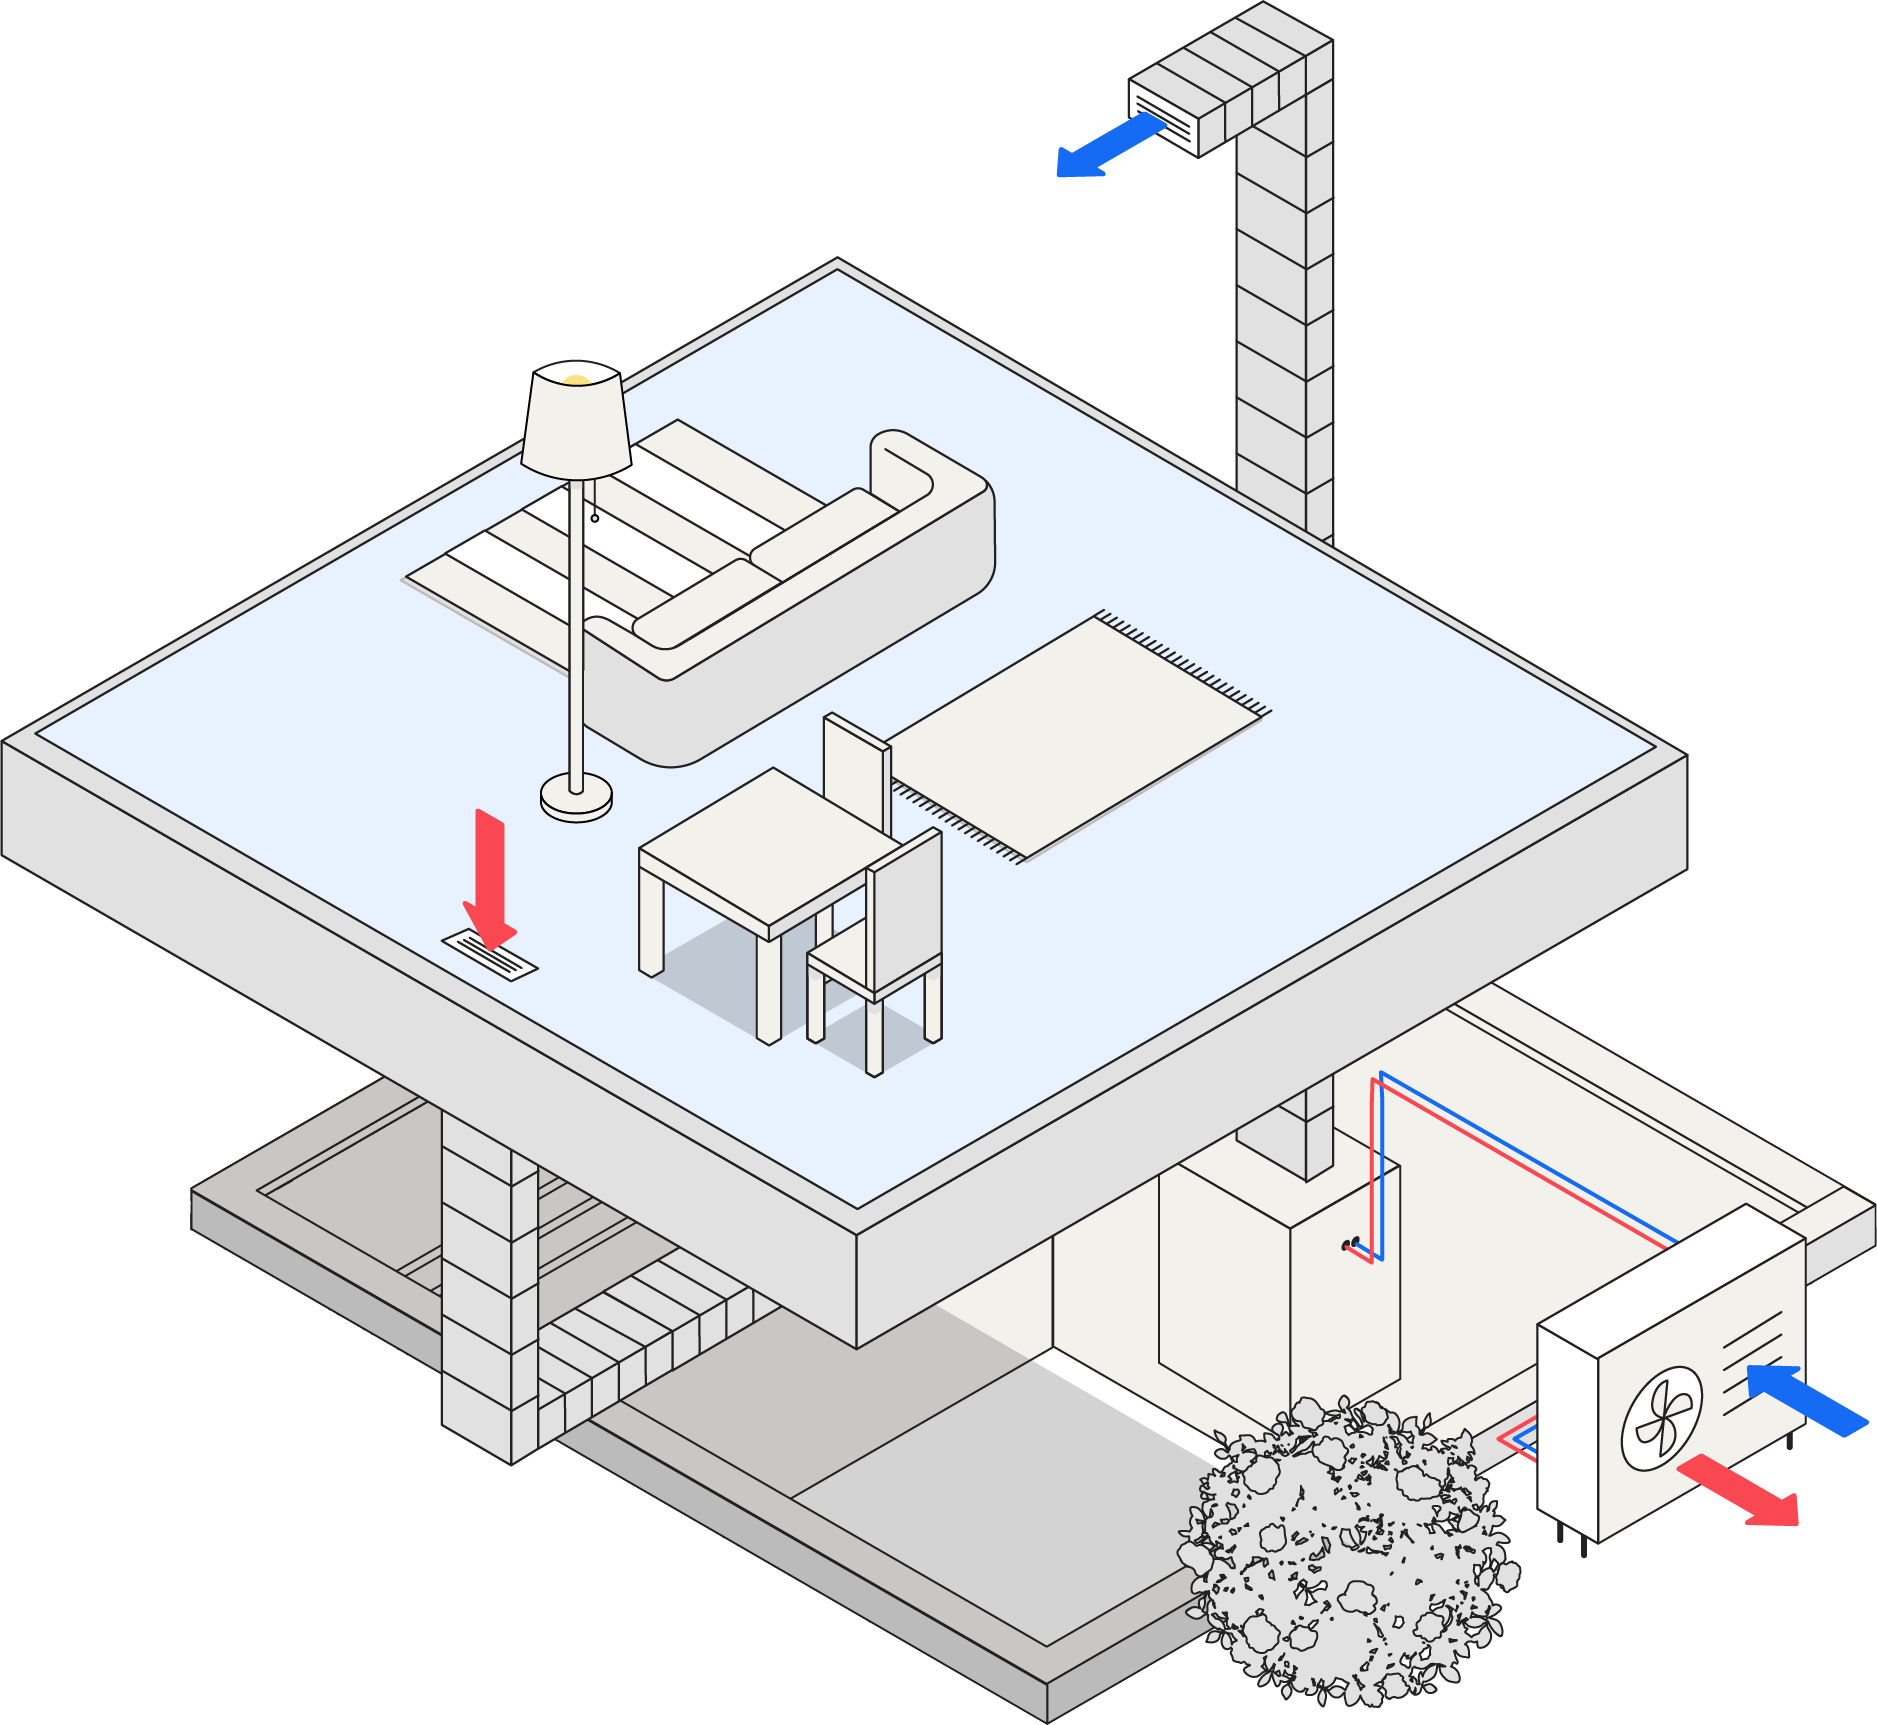 Illustration of a room with duct work